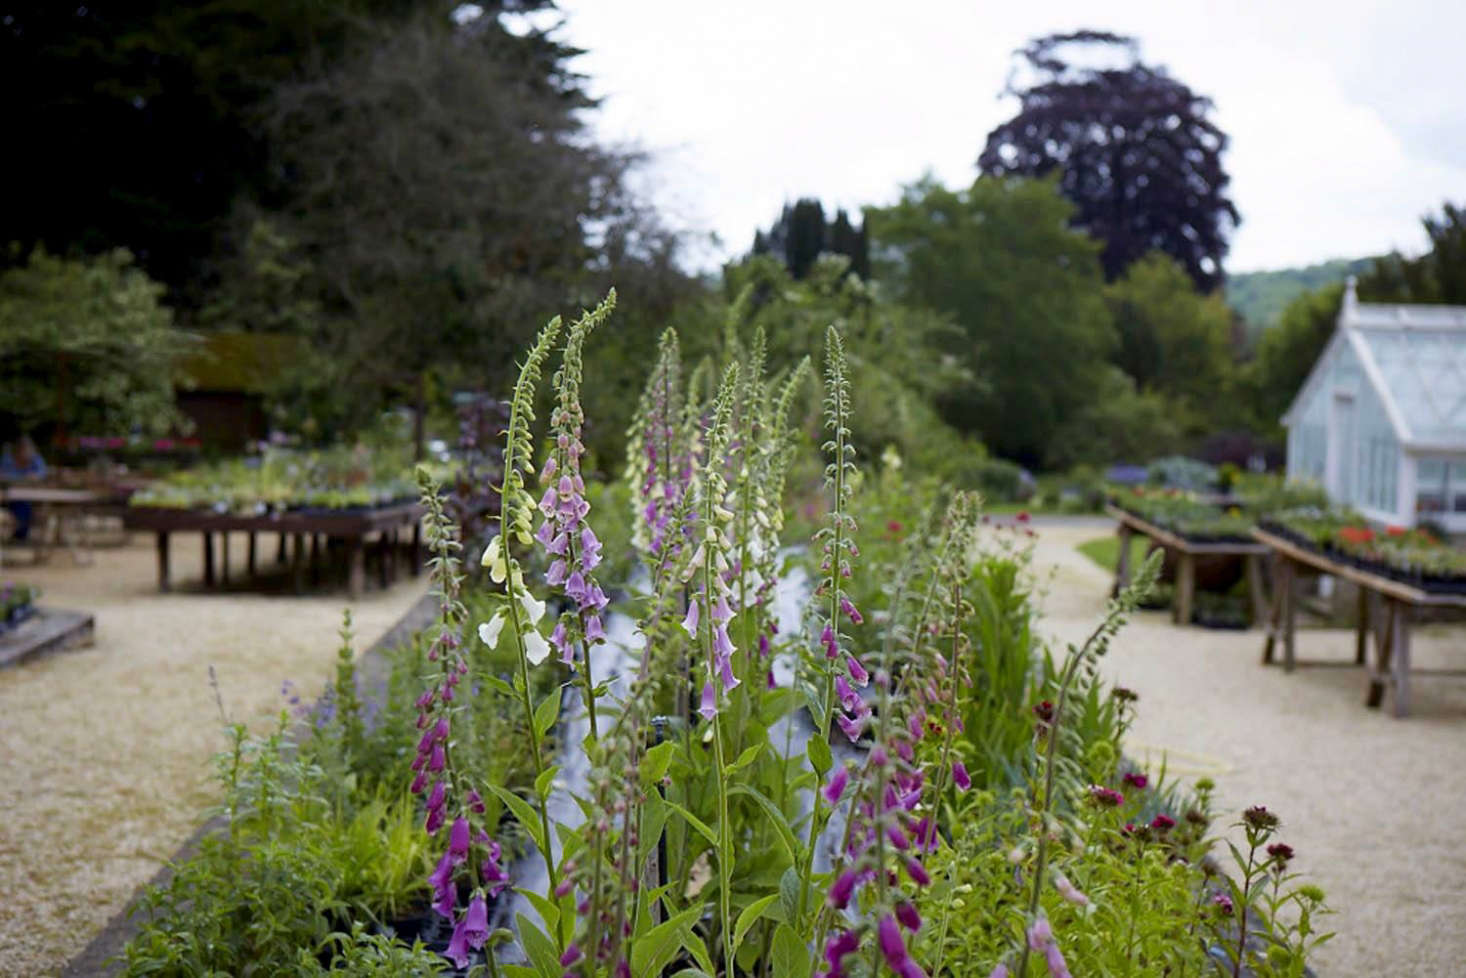 Foxgloves for sale at Miserden Nursery. See more atRidiculously Charming, Even for the Cotswolds: The Nursery at Miserden. Photograph by Britt Willoughby Dyer.